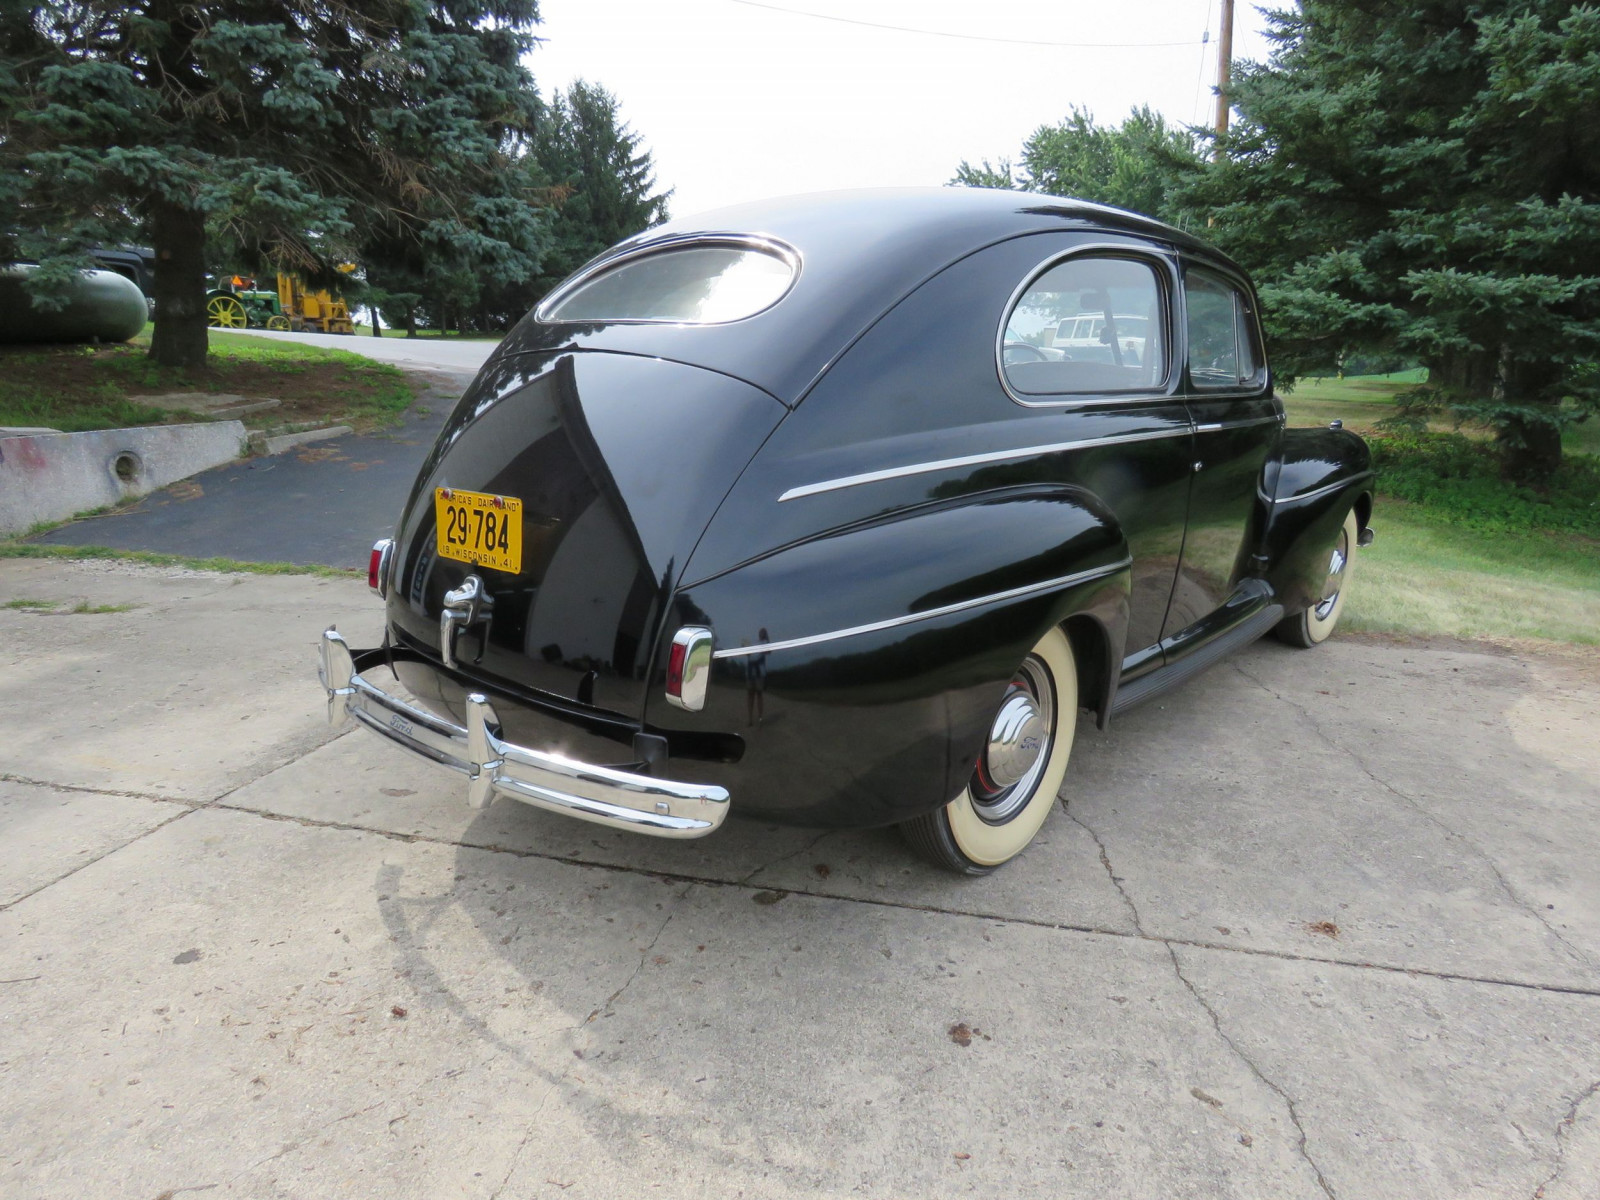 1941 Ford Super Deluxe Tudor Sedan - Image 4